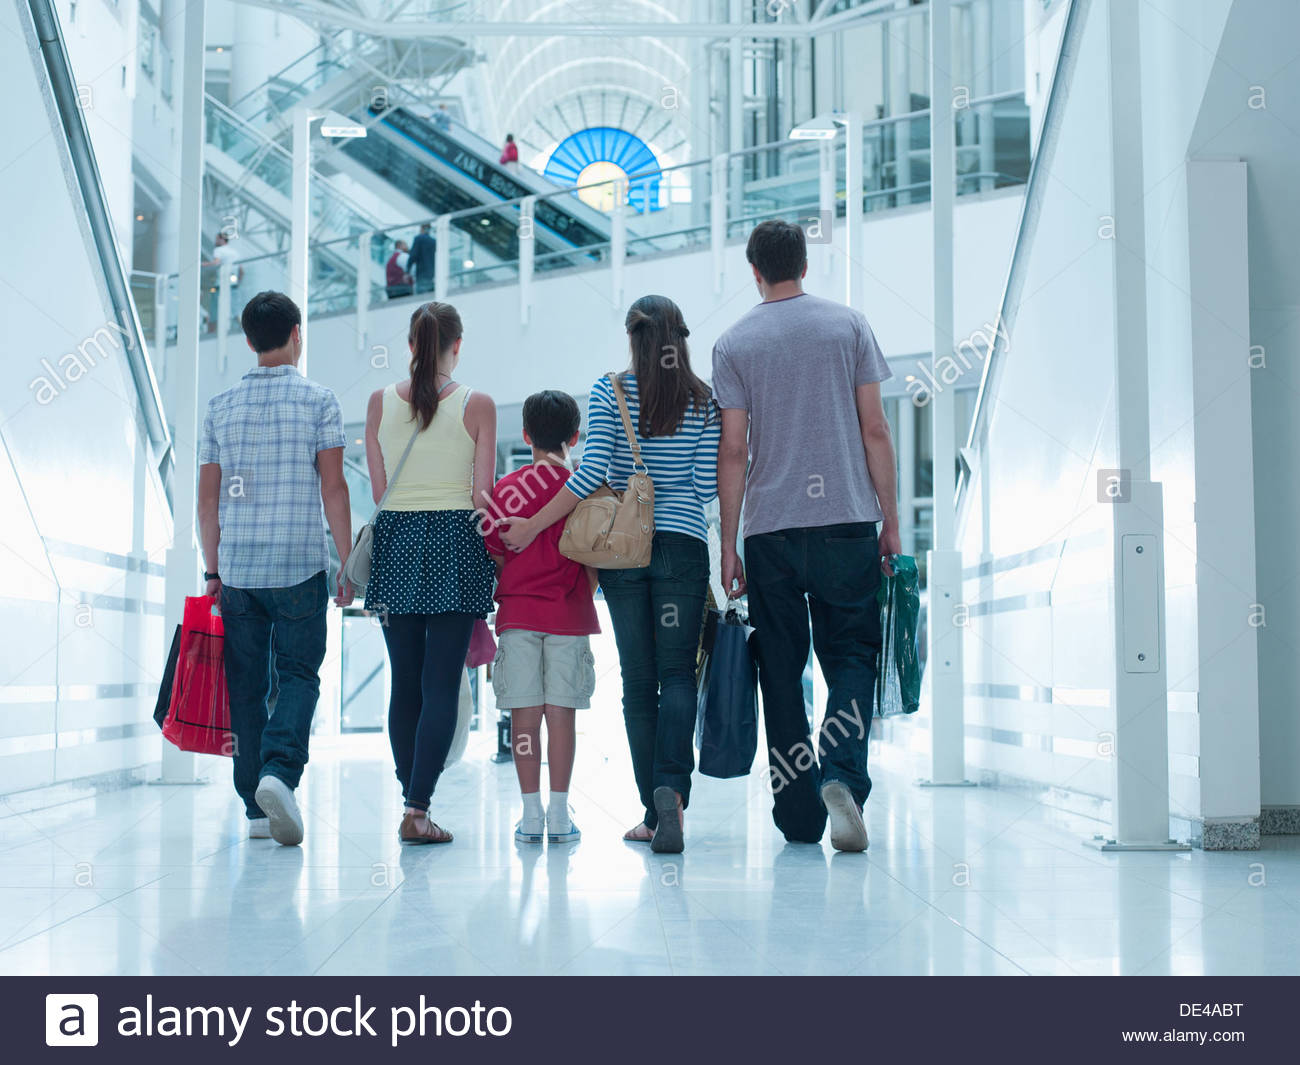 Family carrying shopping bags in mall - Stock Image